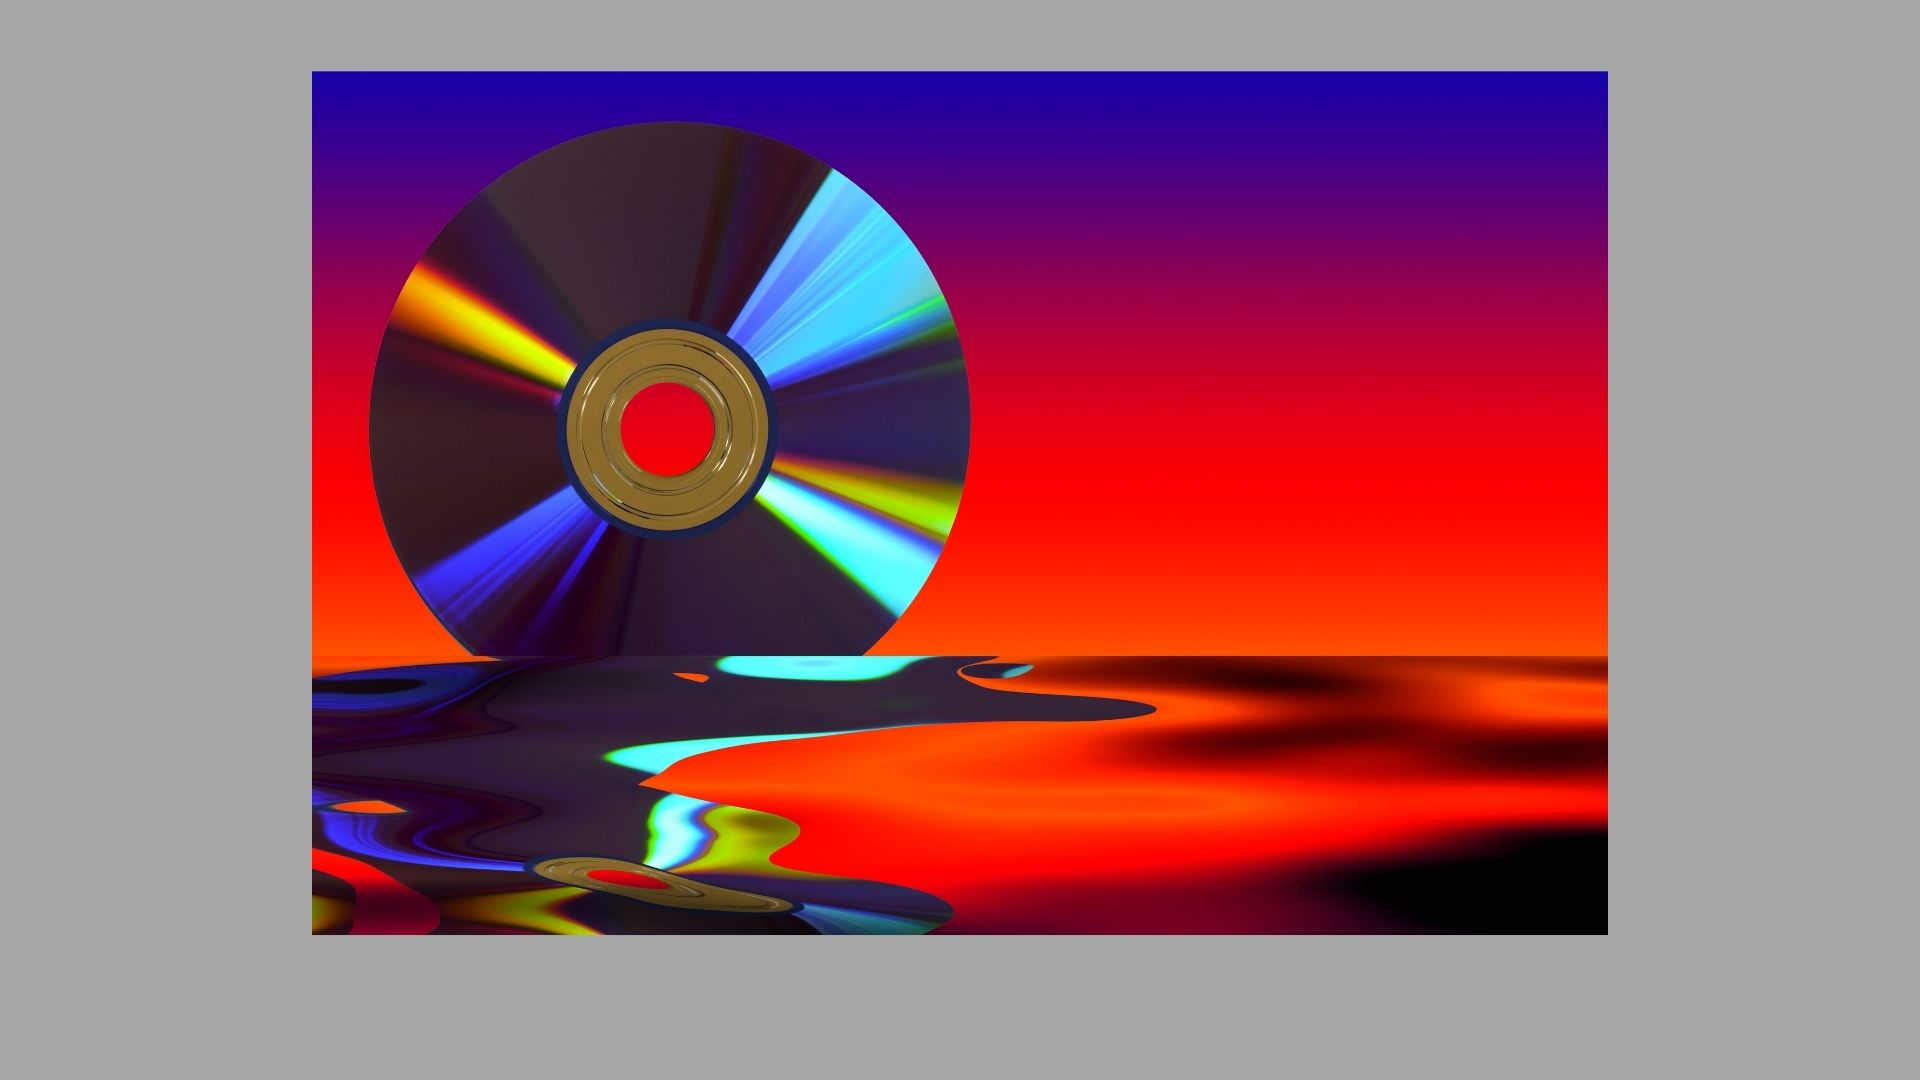 Photo of a DVD on a reddish background